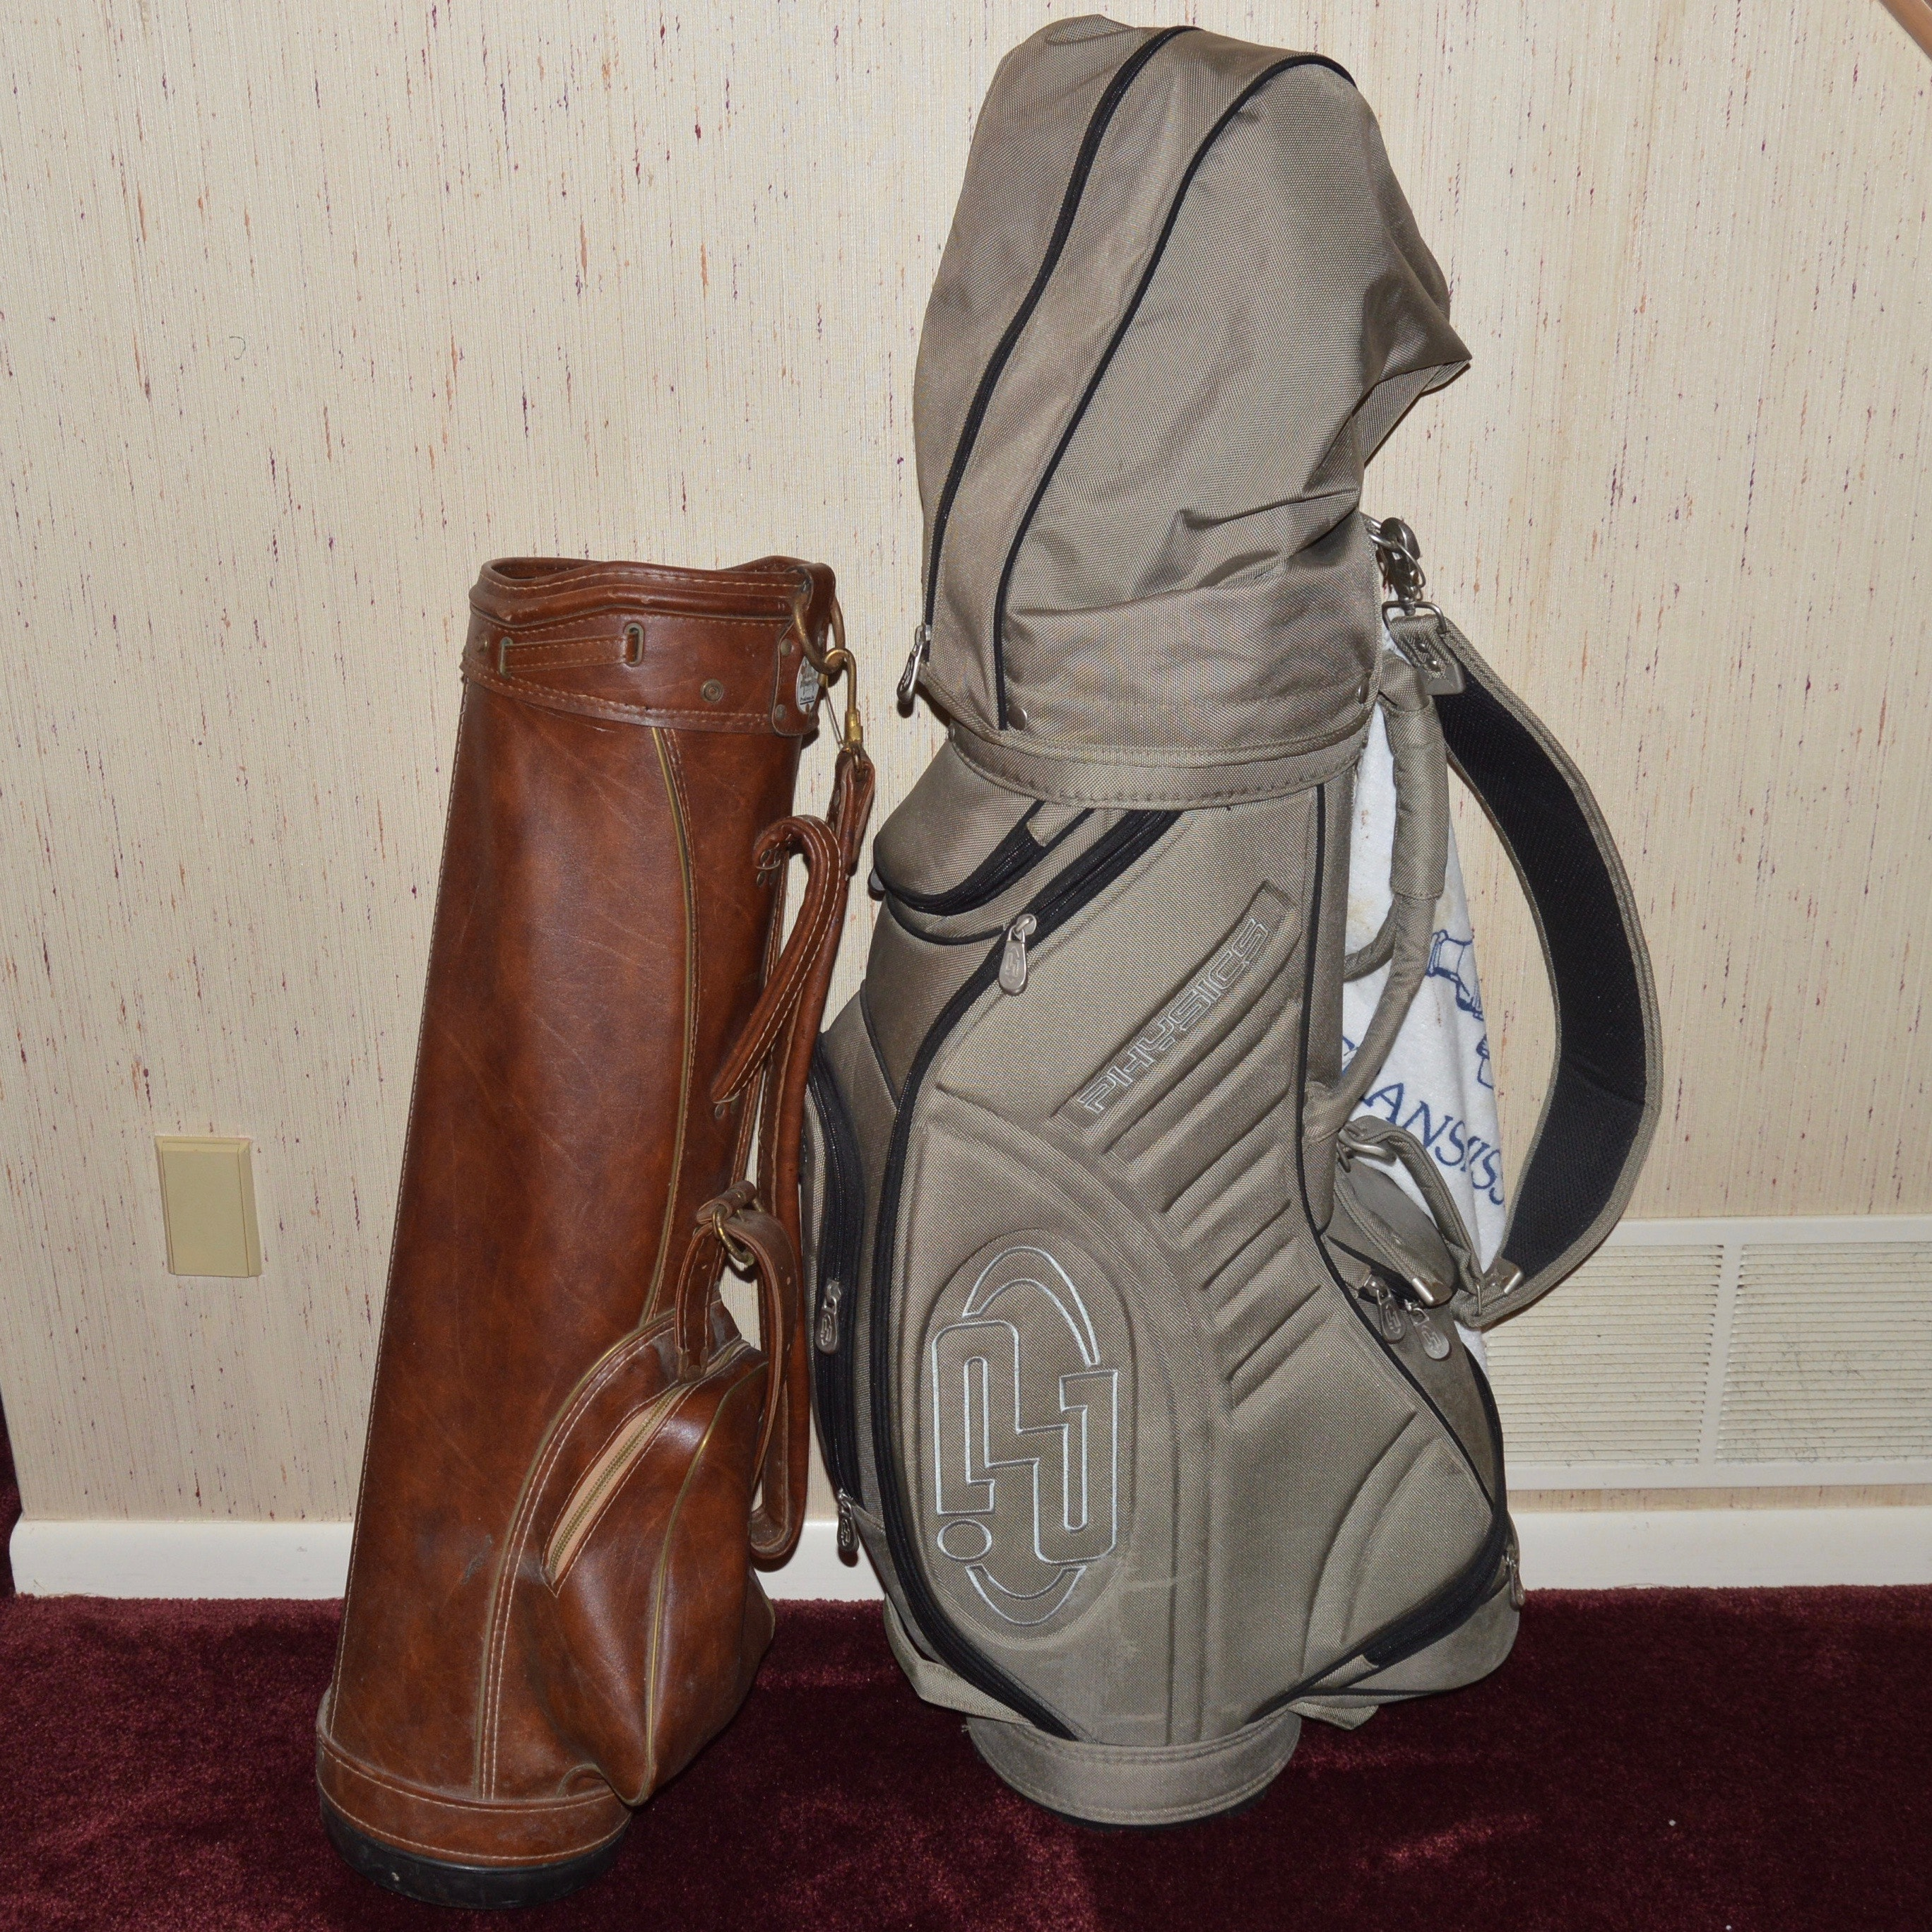 Golf Clubs and Golf Bags